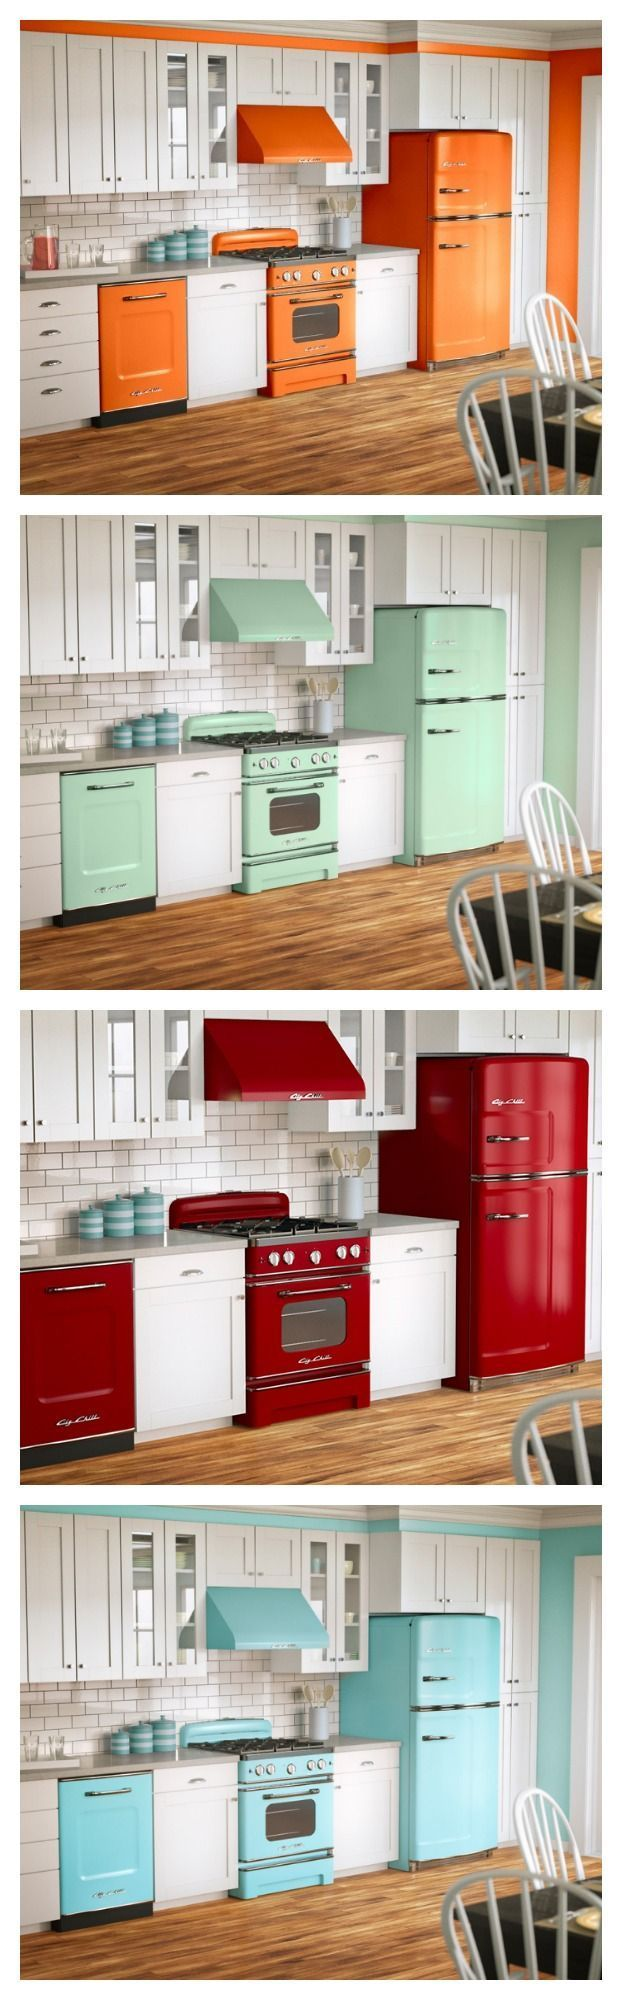 Fun colors, BIG style in a Retro design. Fall in love with your kitchen again with Big Chill!